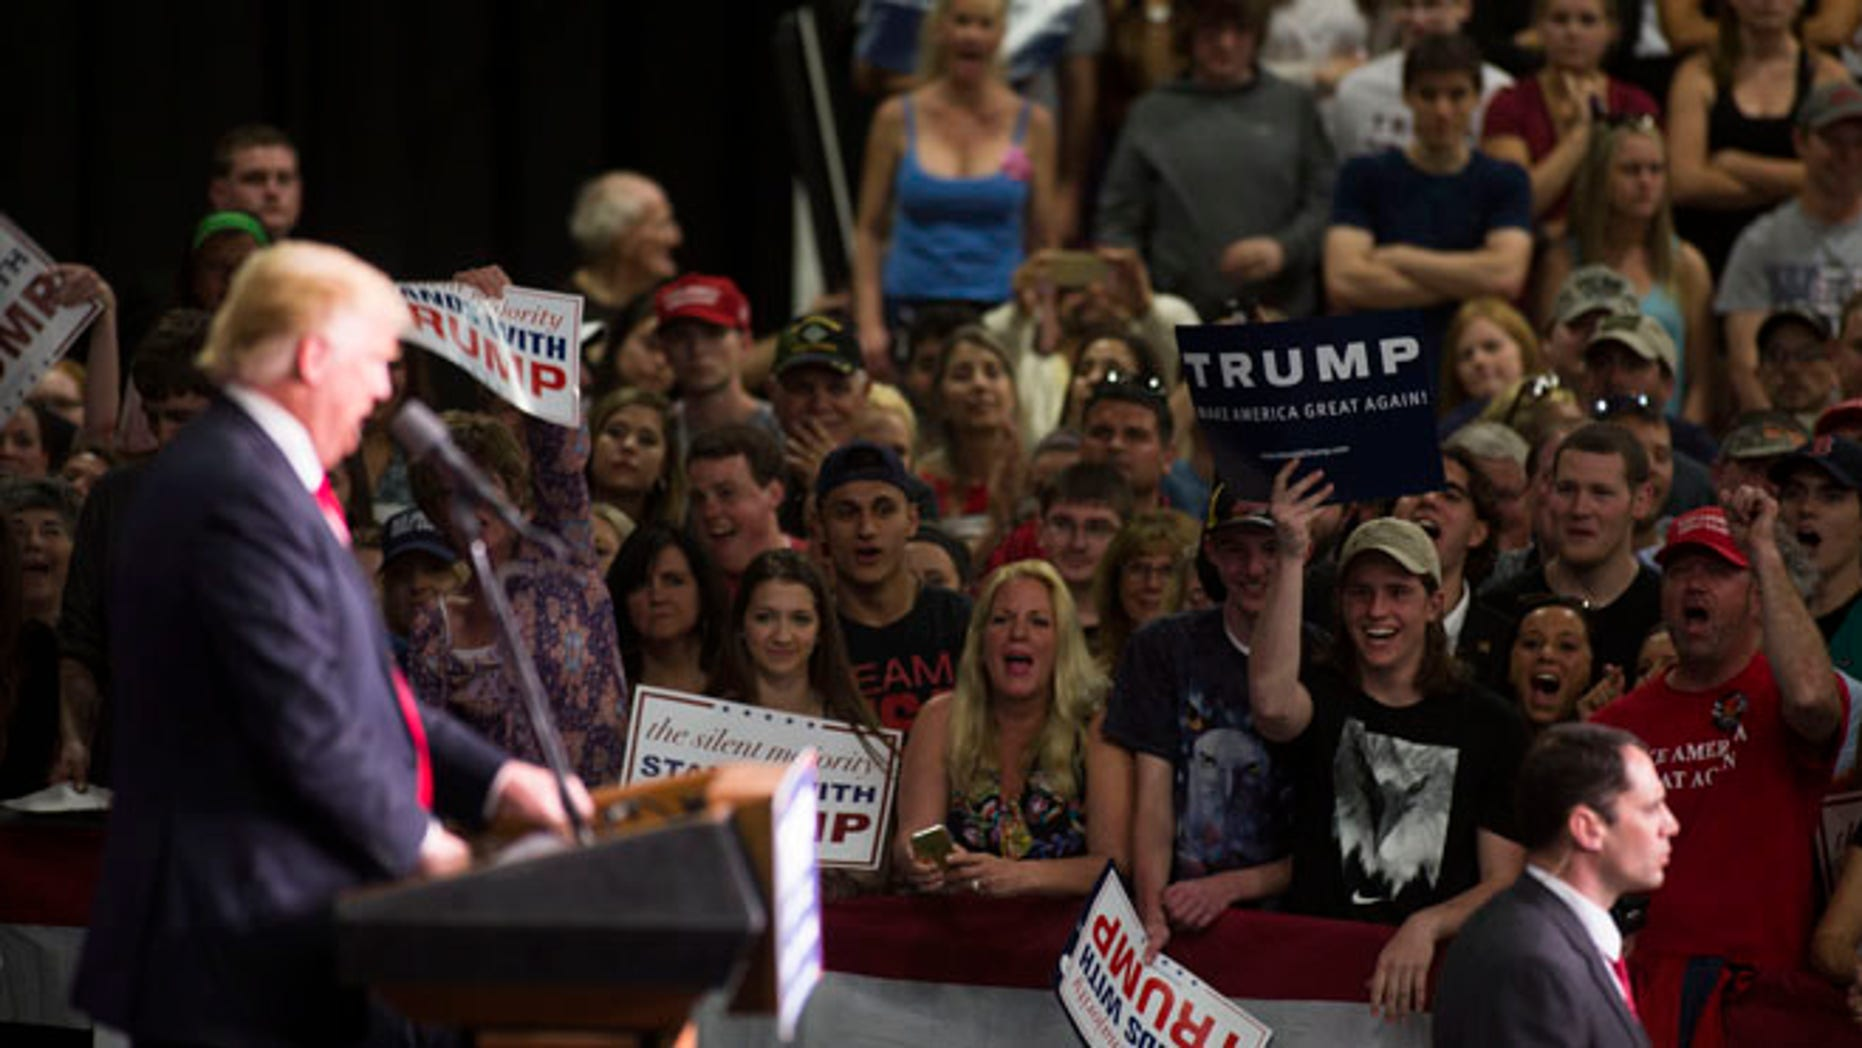 Republican presidential candidate Donald Trump speaks at a campaign rally on April 25, 2016 at West Chester University in West Chester, Pennsylvania. (Photo by Jessica Kourkounis/Getty Images)